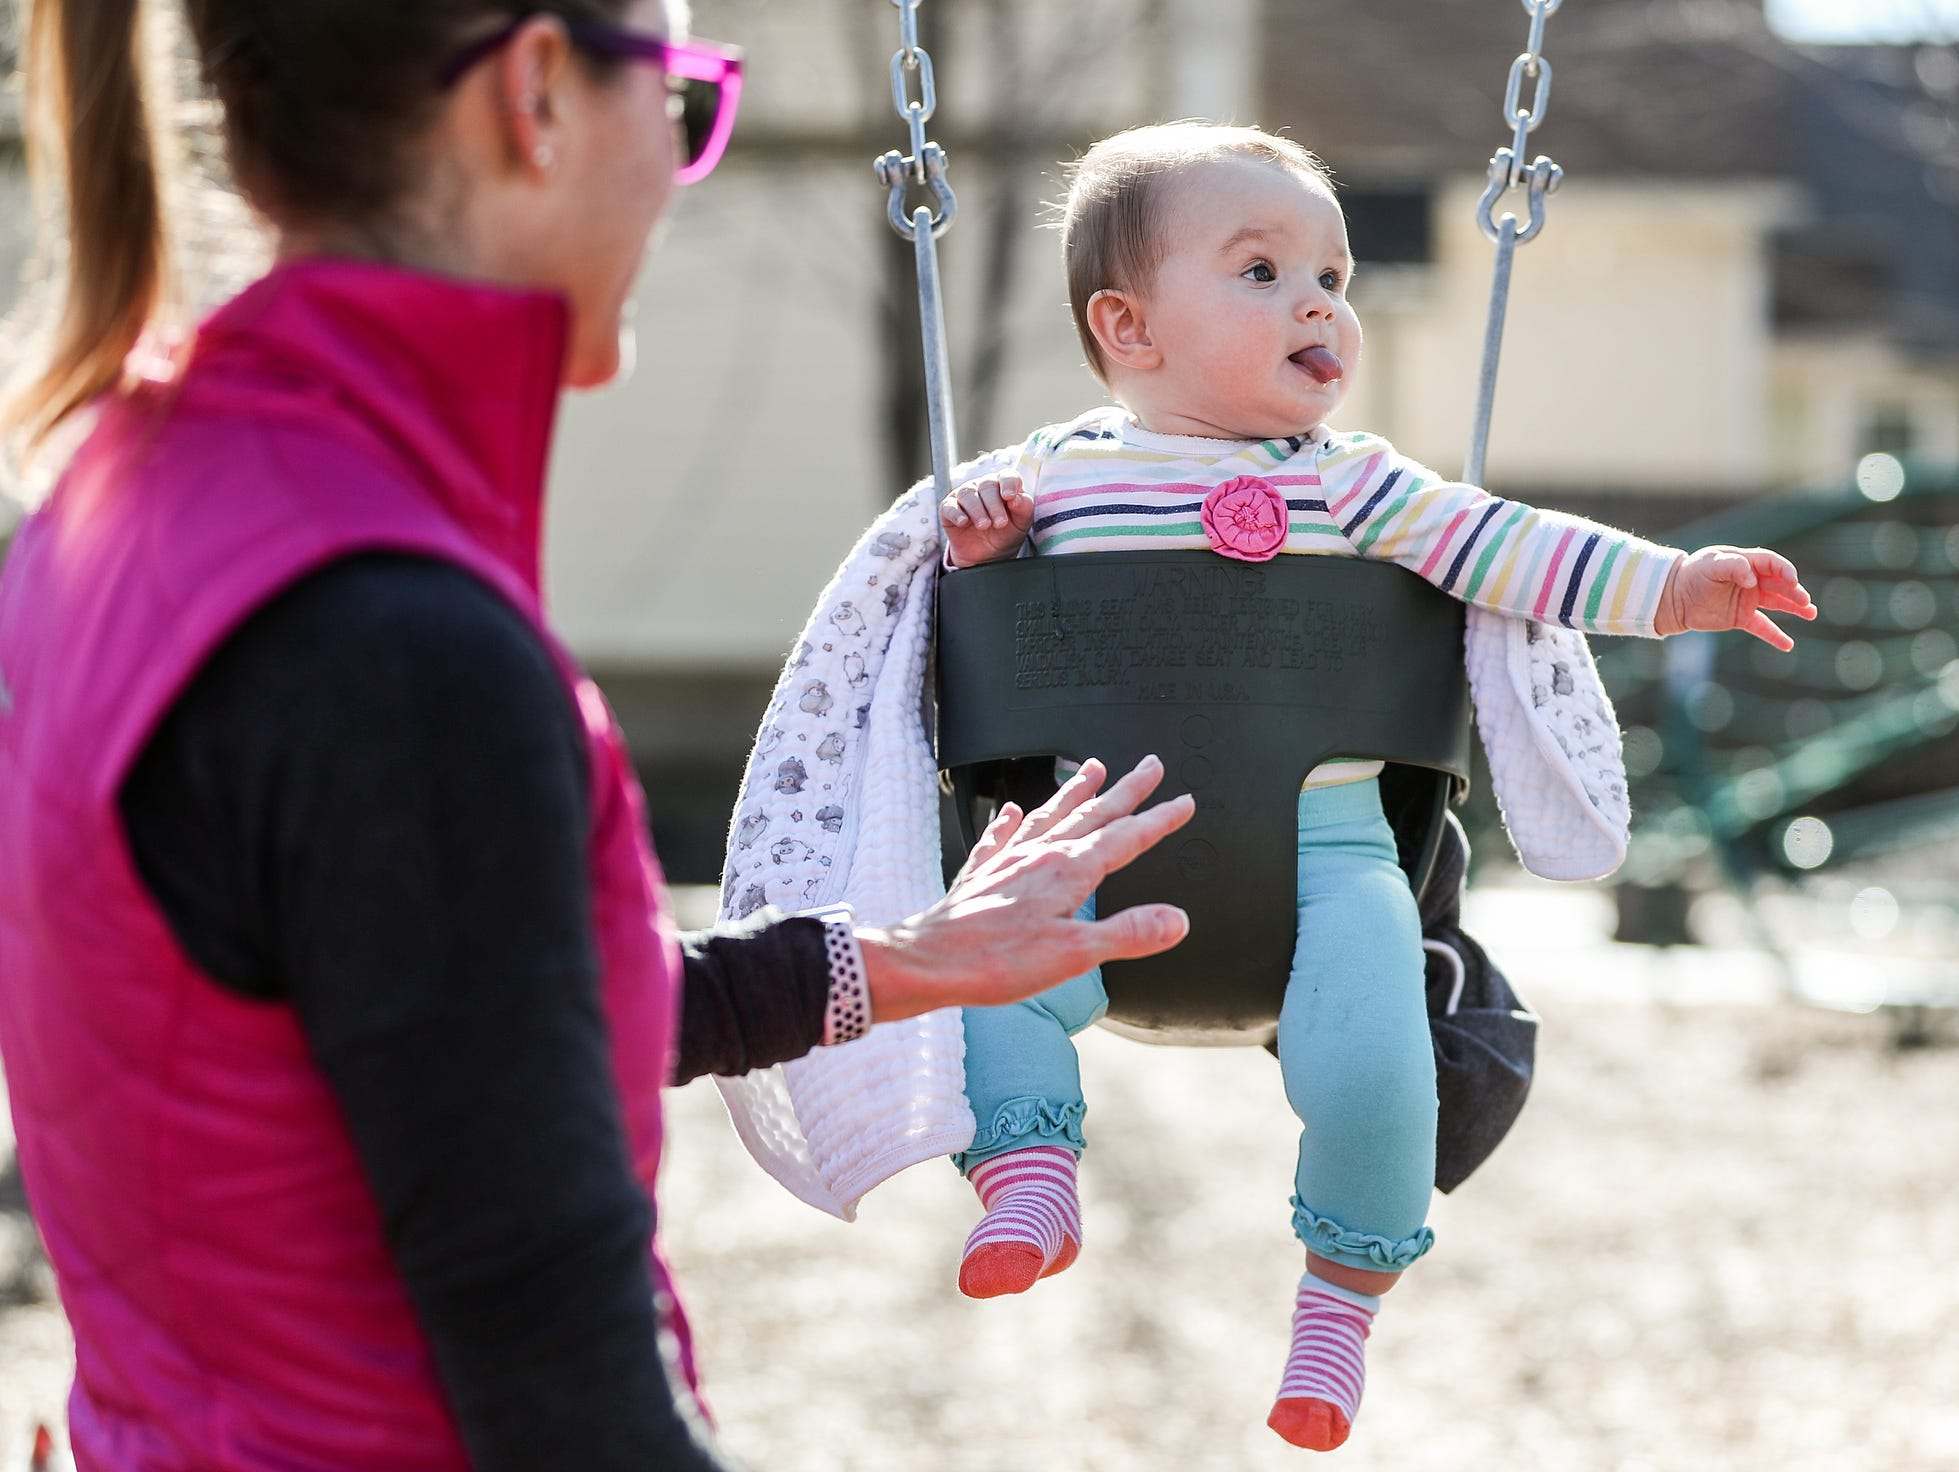 From left, Emily Cochard pushes her 8-month-old daughter Everly Monaghan, who looks to her father Mike Monaghan (not pictured), on the swings at Craig Kids Memorial Park in Indianapolis, Sunday, Feb. 3, 2019. The day's 65-degree weather comes just days after sub-zero temperatures swept over Indiana.